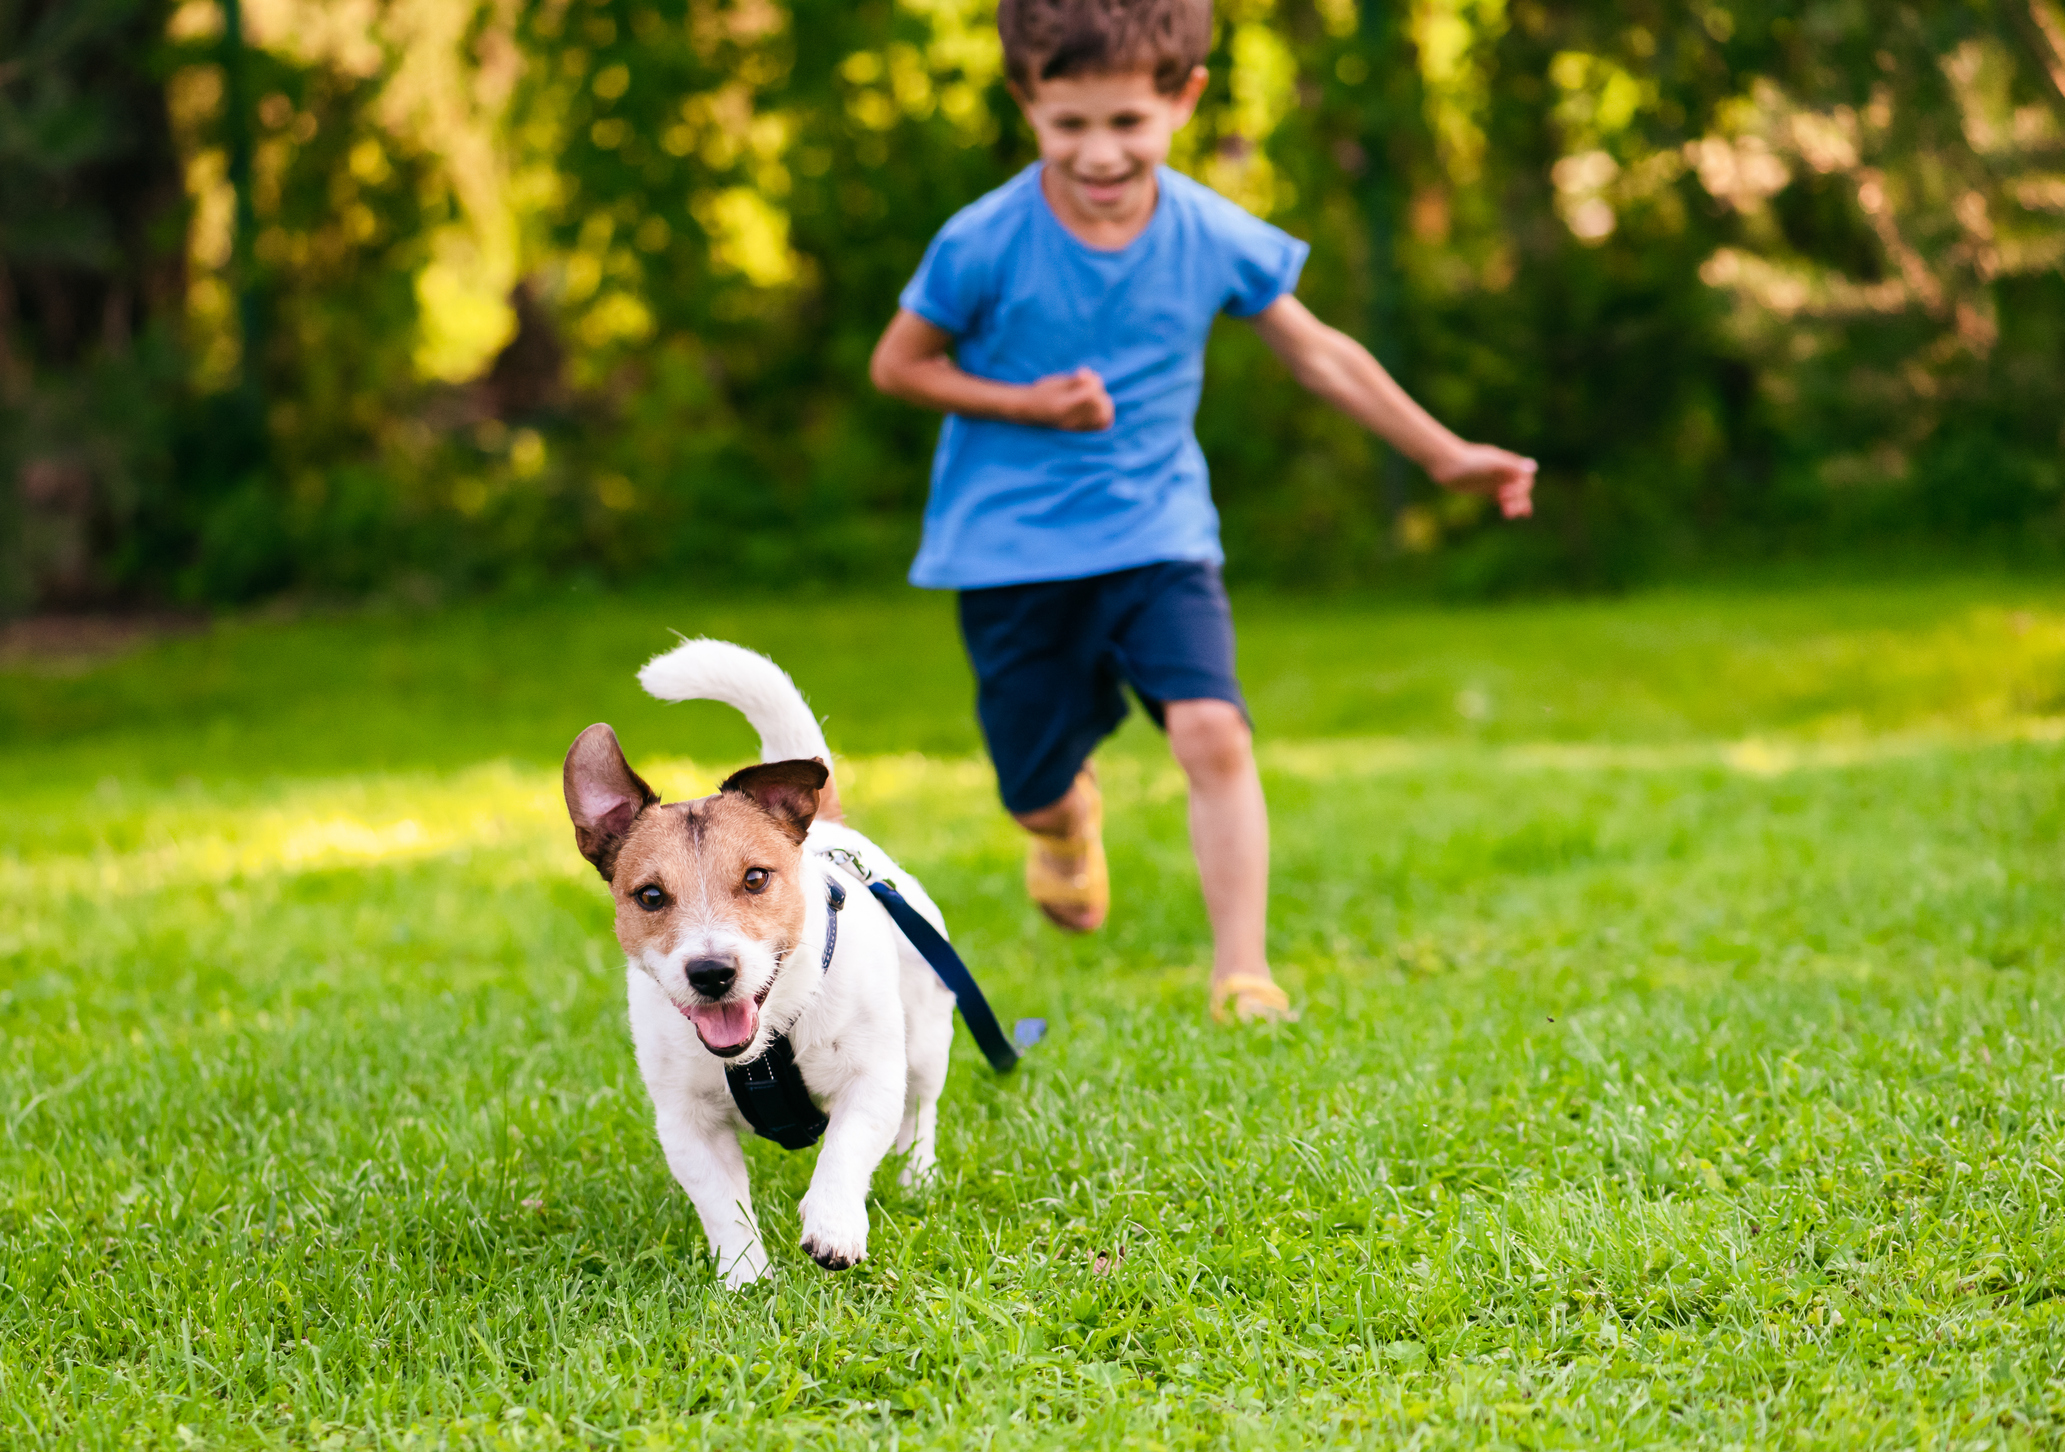 A child chasing a small dog across a grassy garden on a sunny day